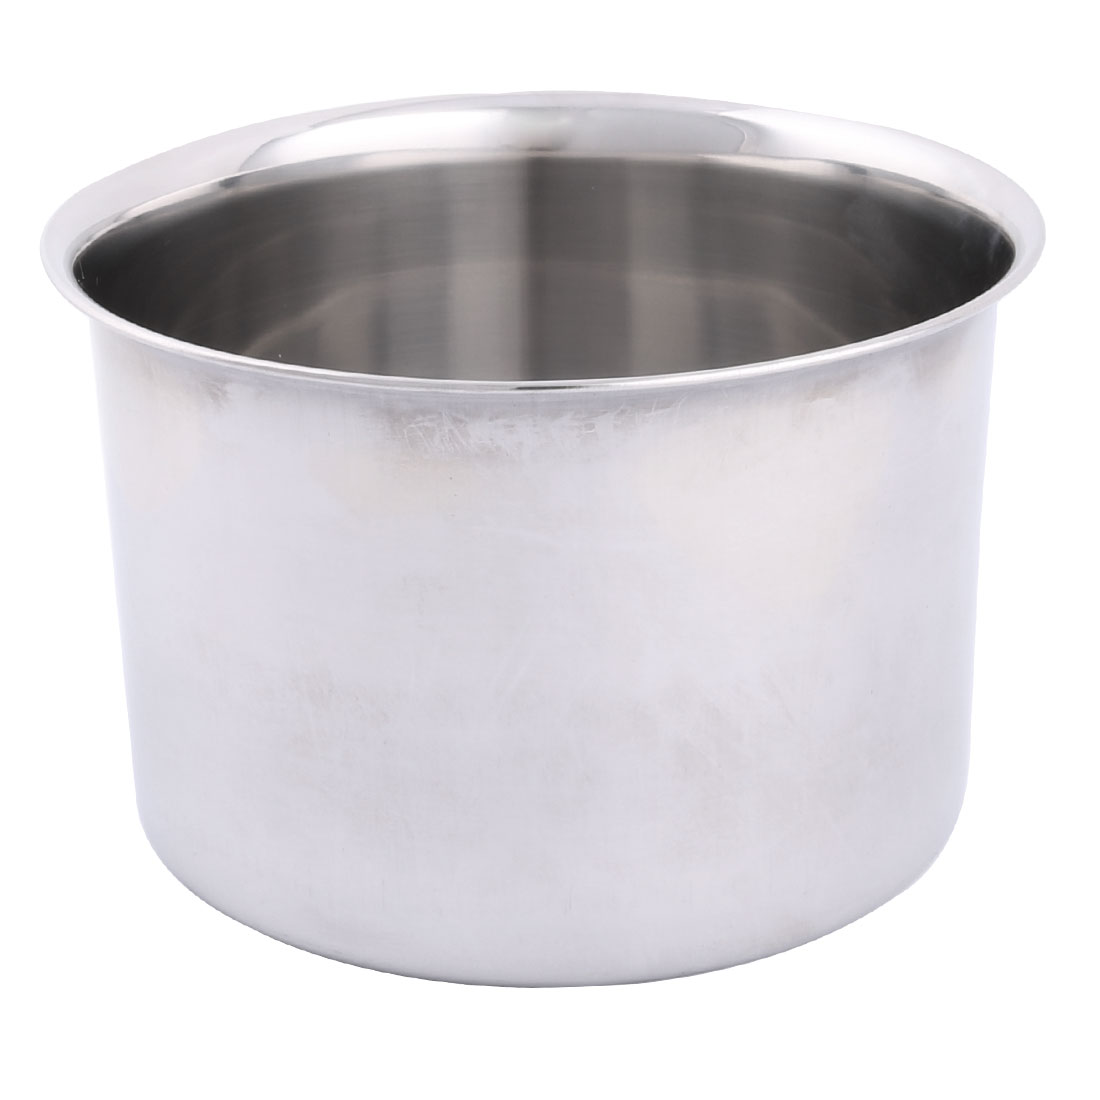 Home Restaurant Stainless Steel Round Design Porridge Food Soup Dish Plate 22cm Dia